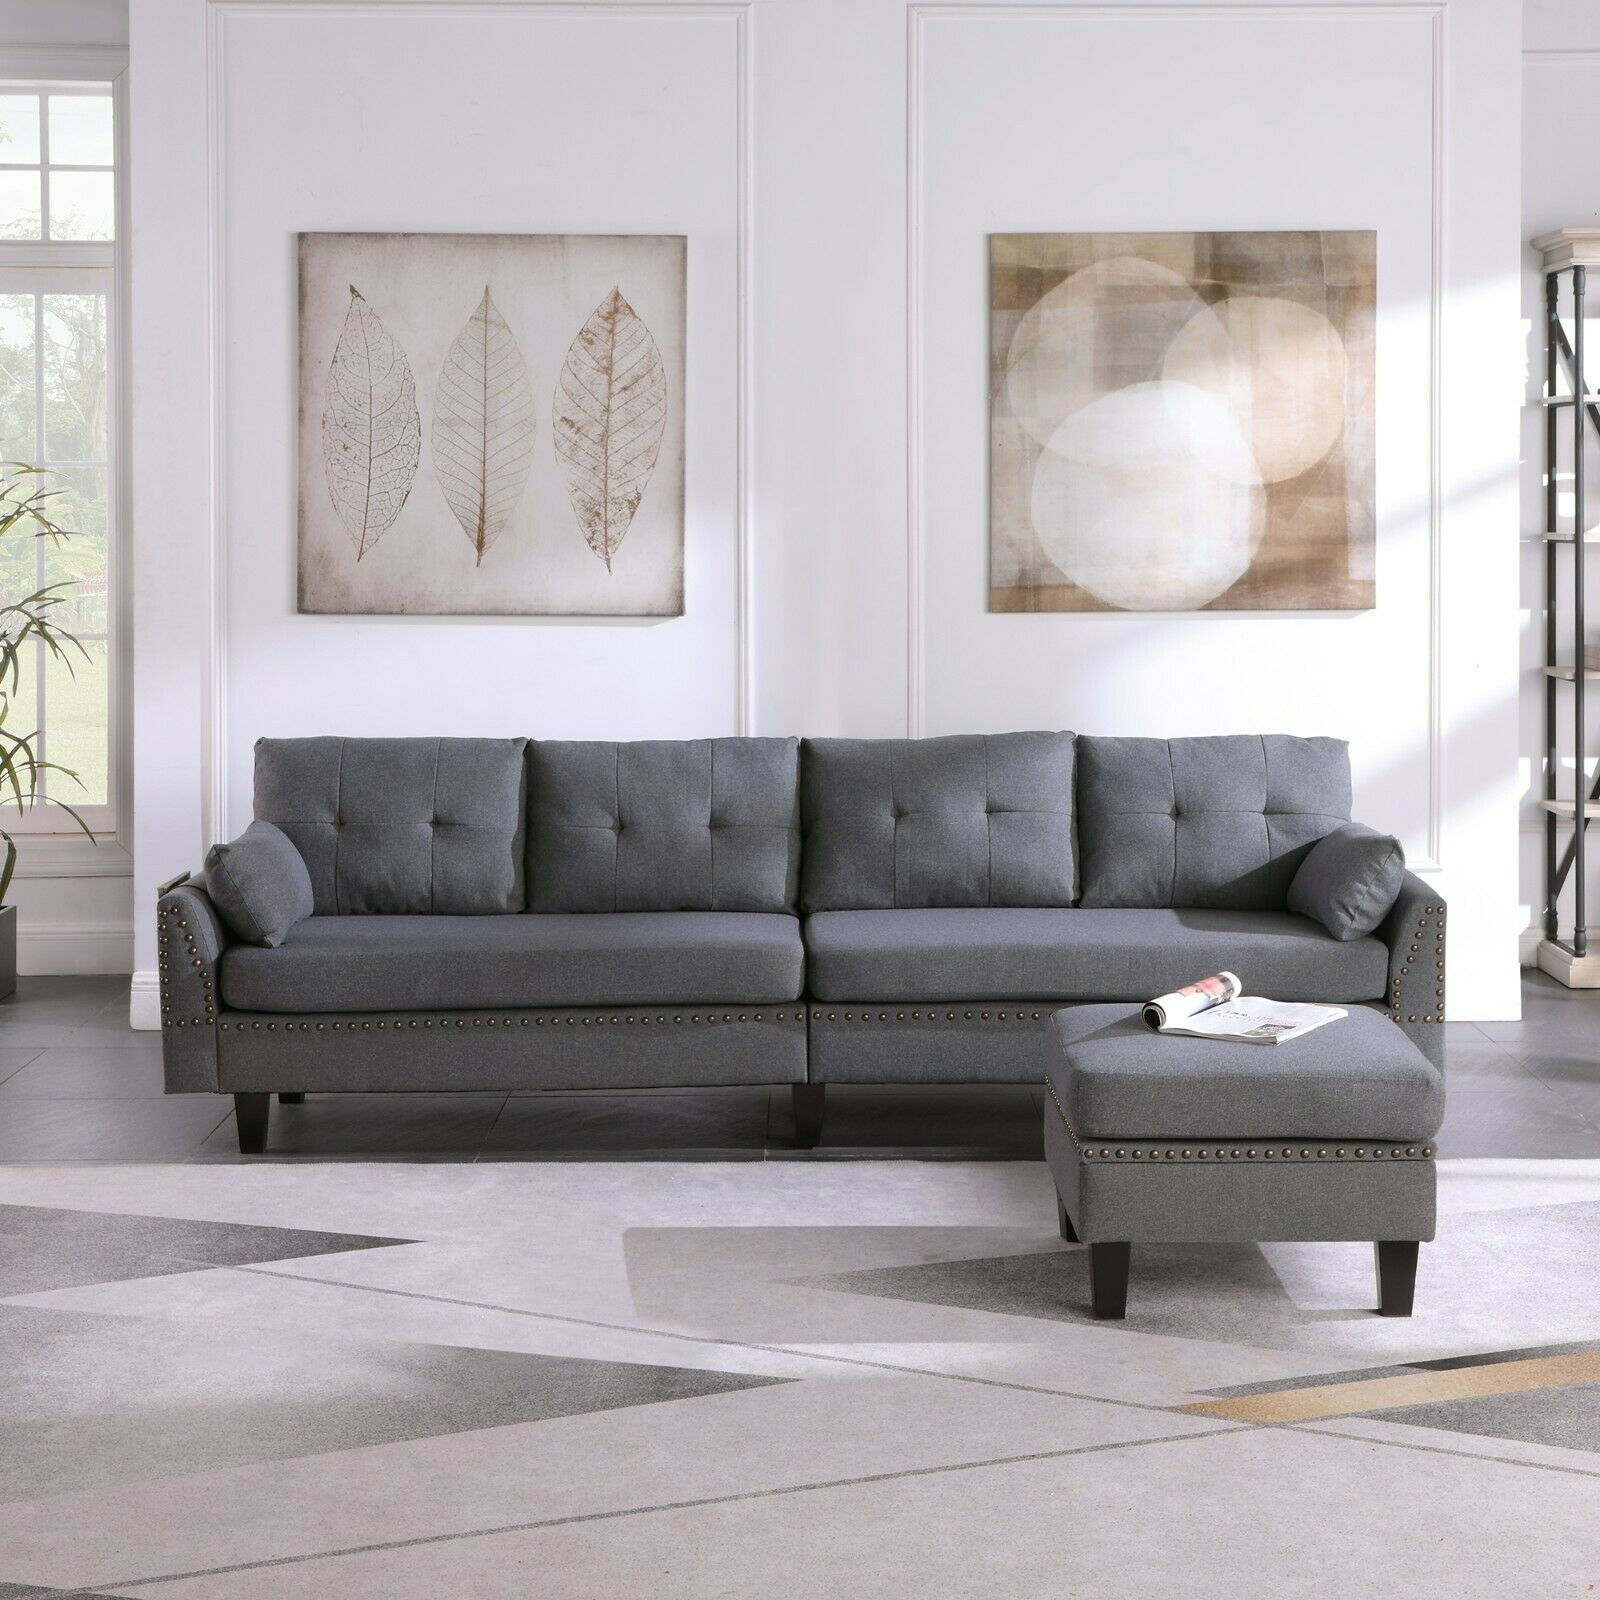 4-Seaters Sectional Sofa/Couch with Storage Ottoman Pillows Upholstered Fabric 2